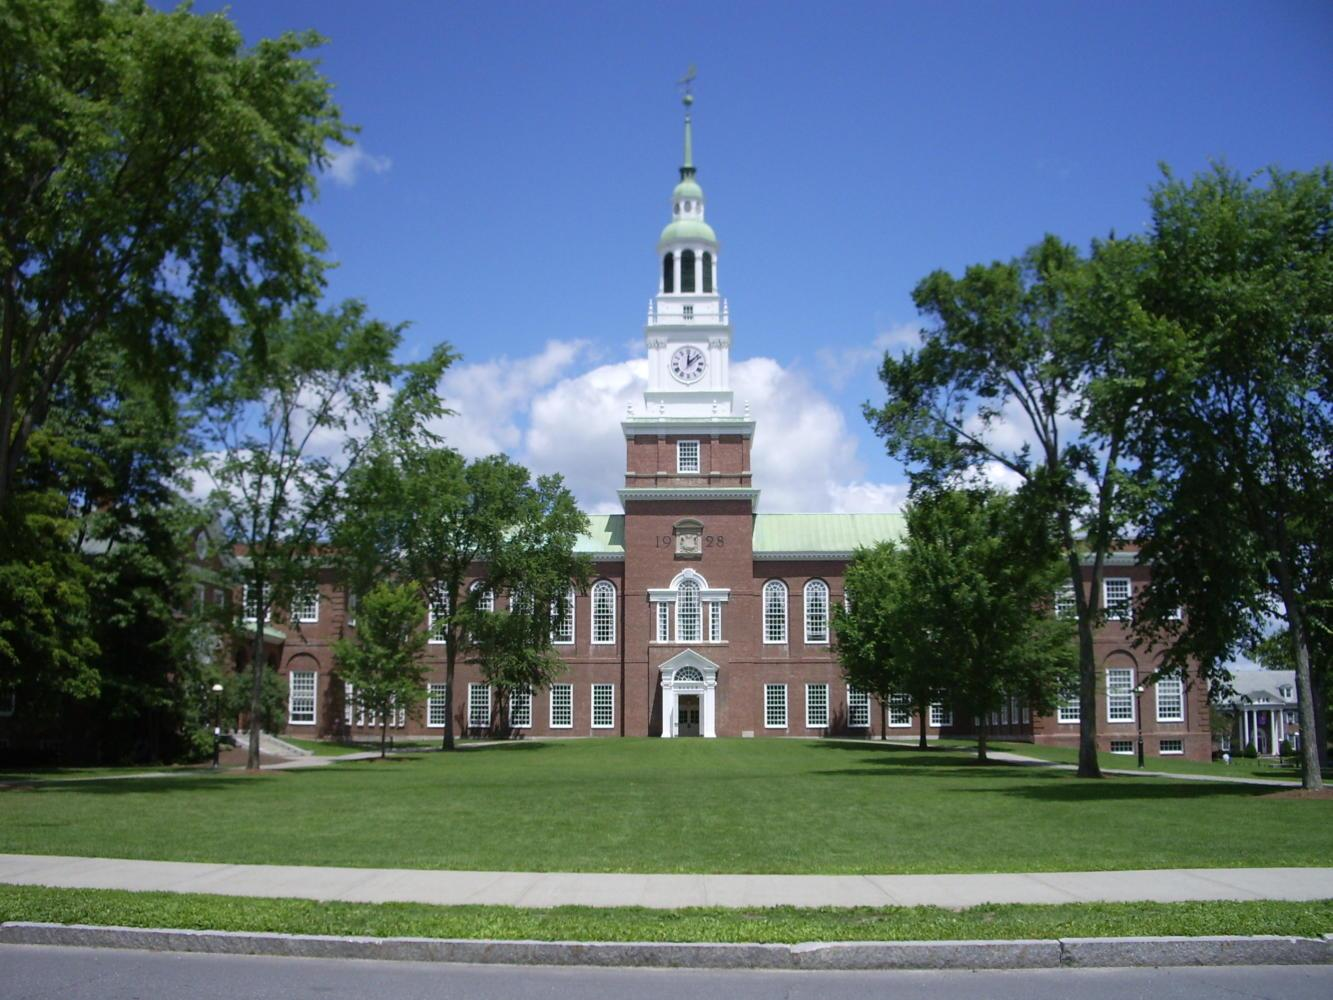 Three Dartmouth College professors were placed on paid leave after they were accused of sexual misconduct. (Photo via Wikimedia Commons)